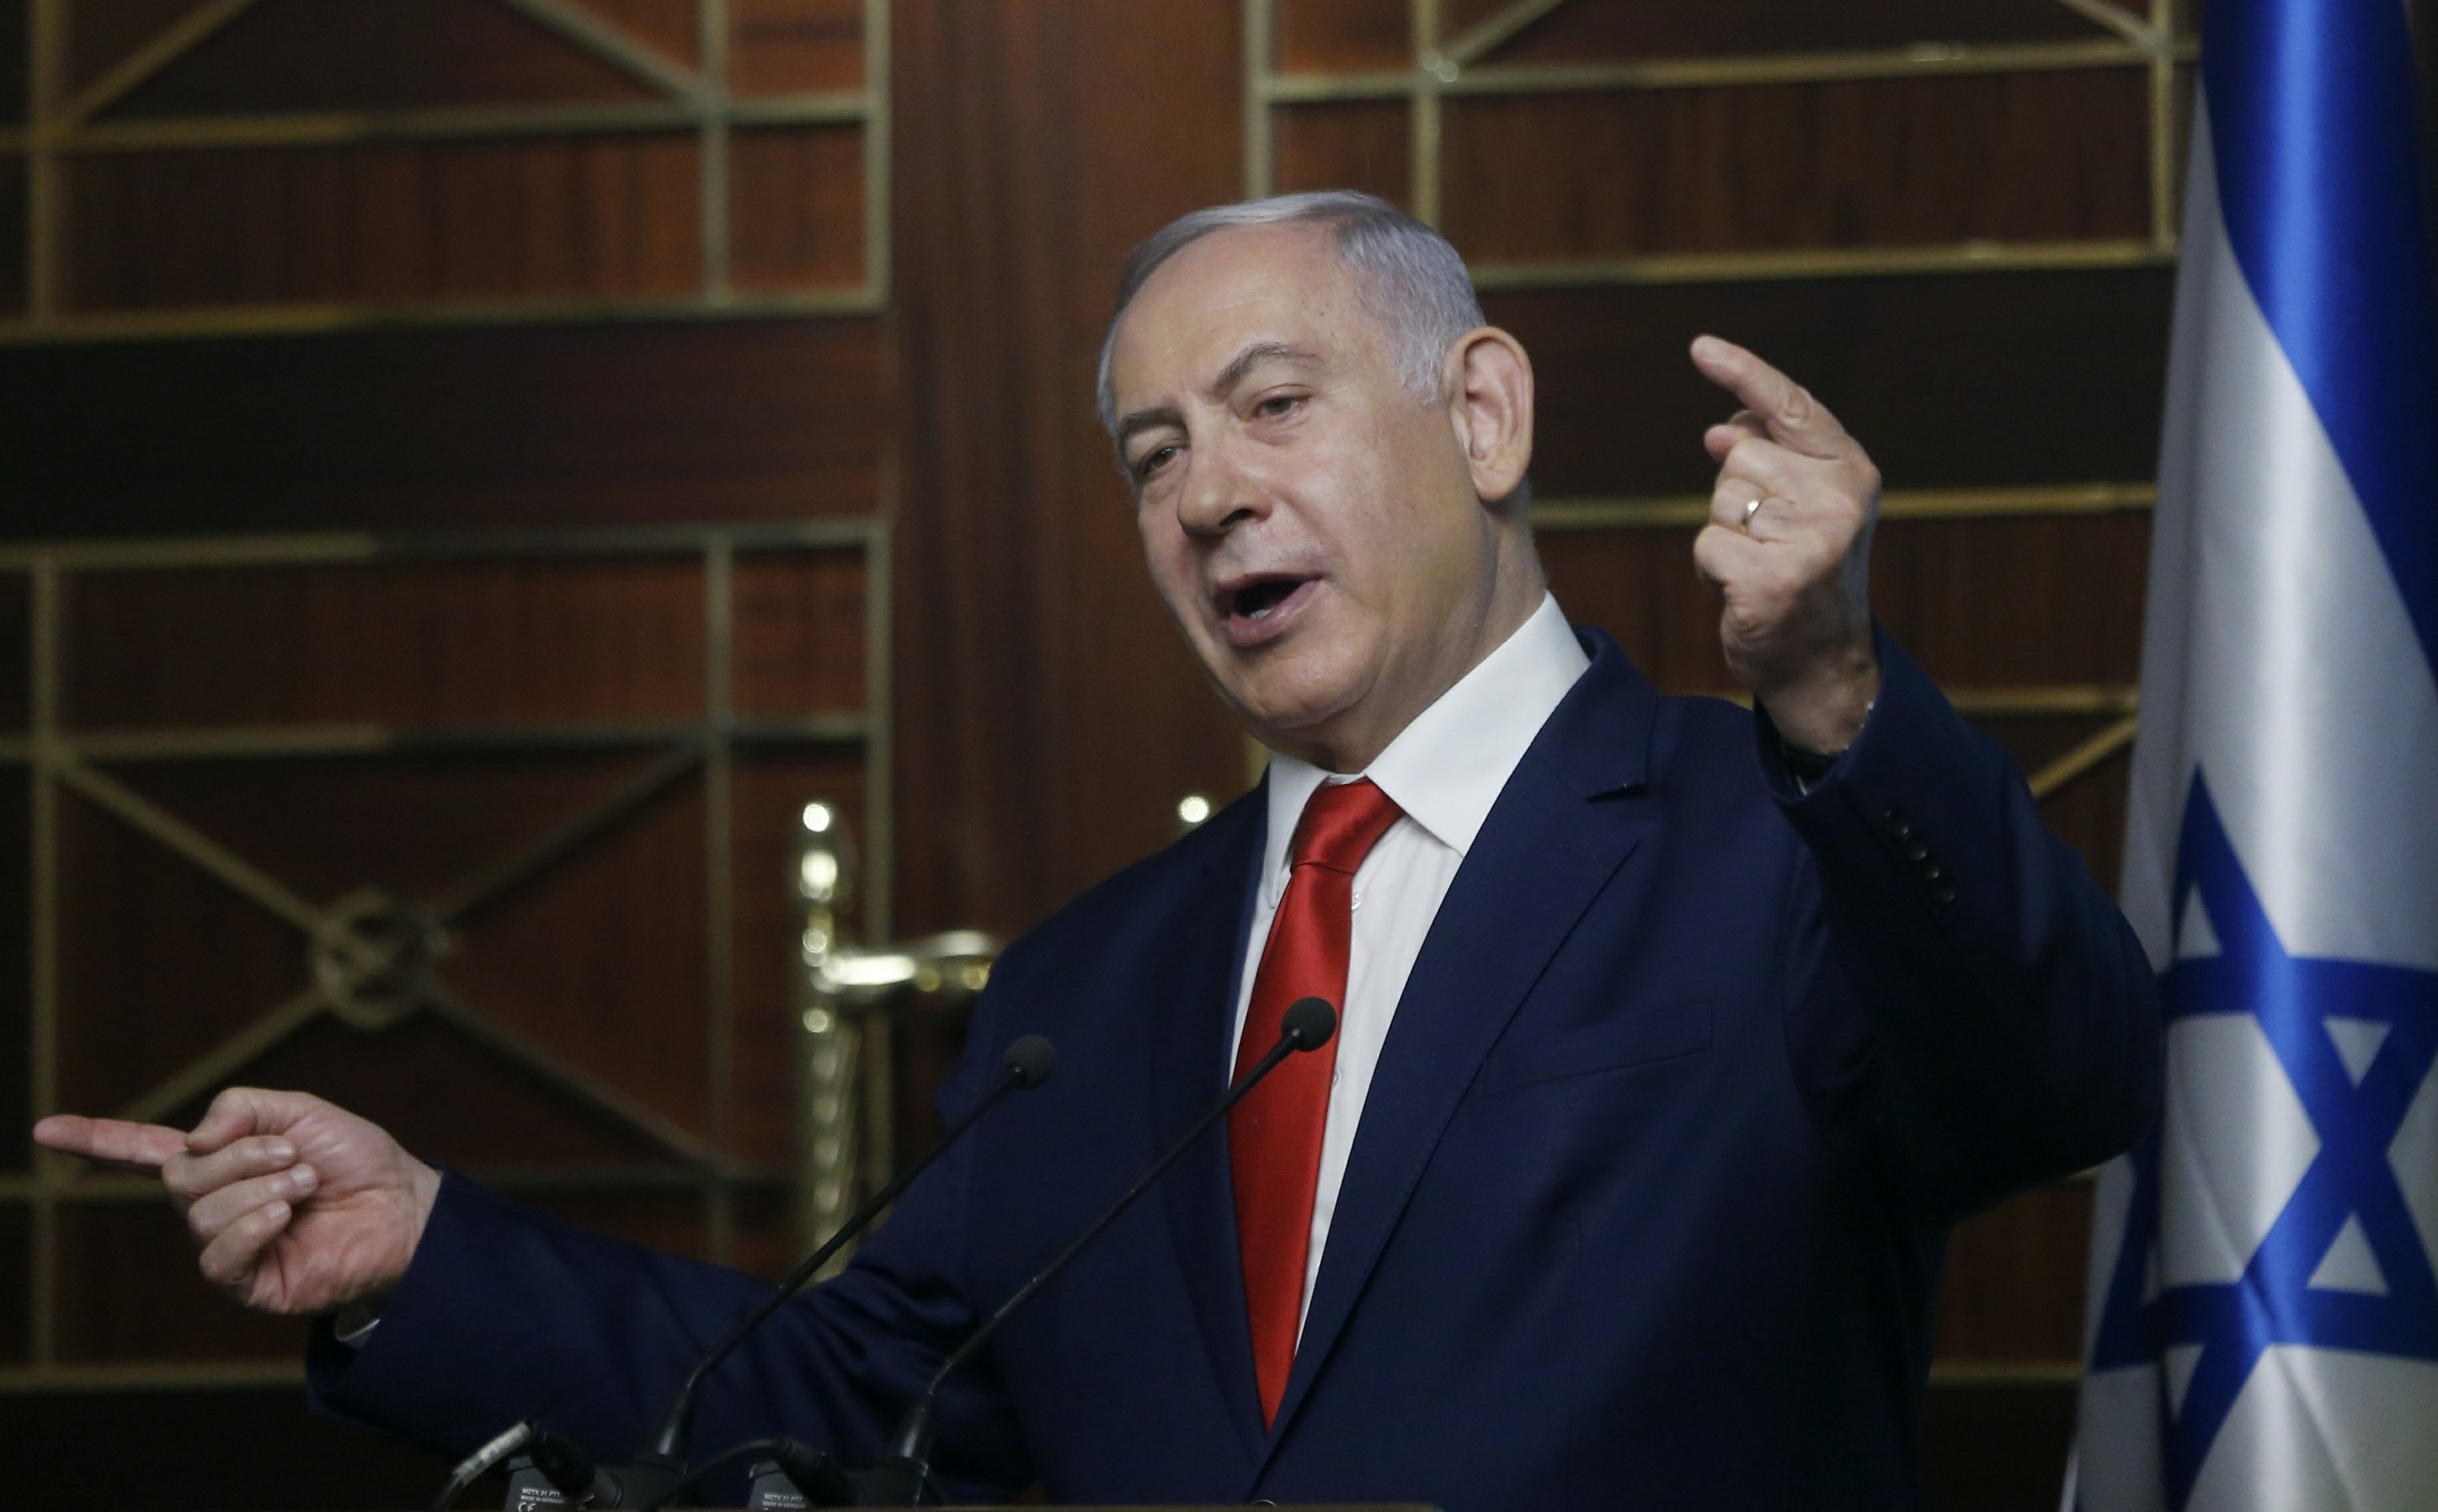 Israel's shadow war with Iran bursts into the open